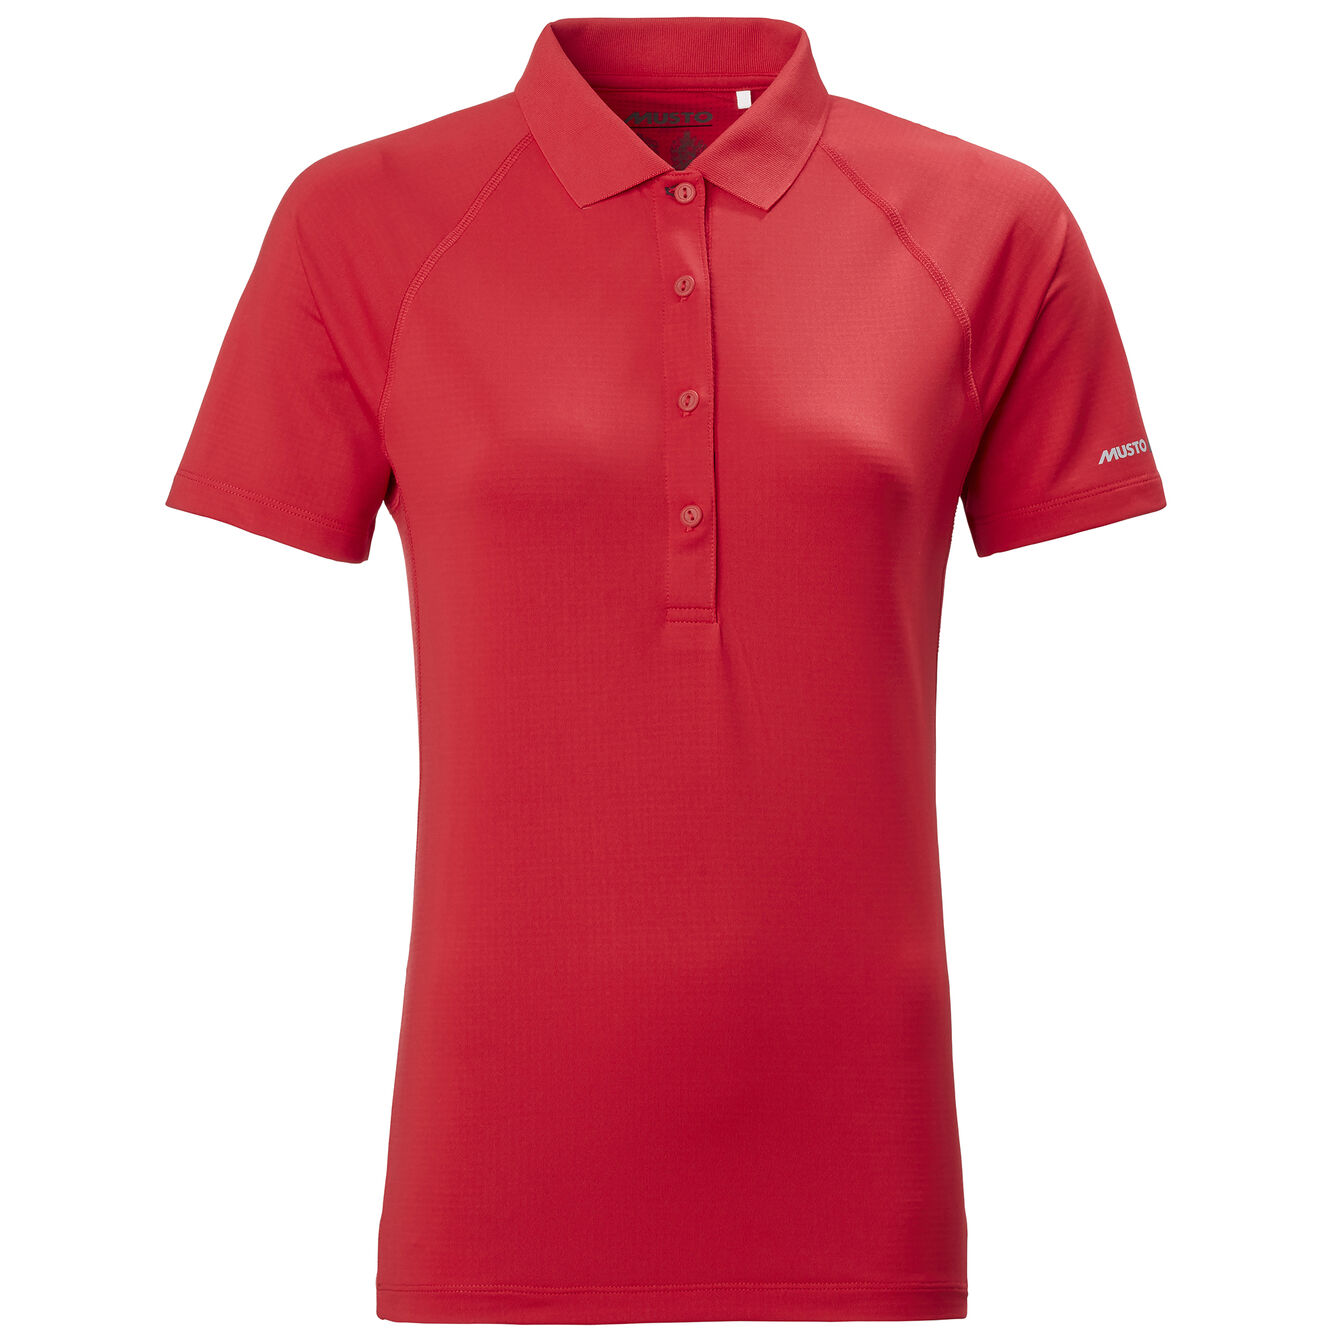 EVO SUNBLOCK SHORT SLEEVE POLO 2.0 FOR WOMEN